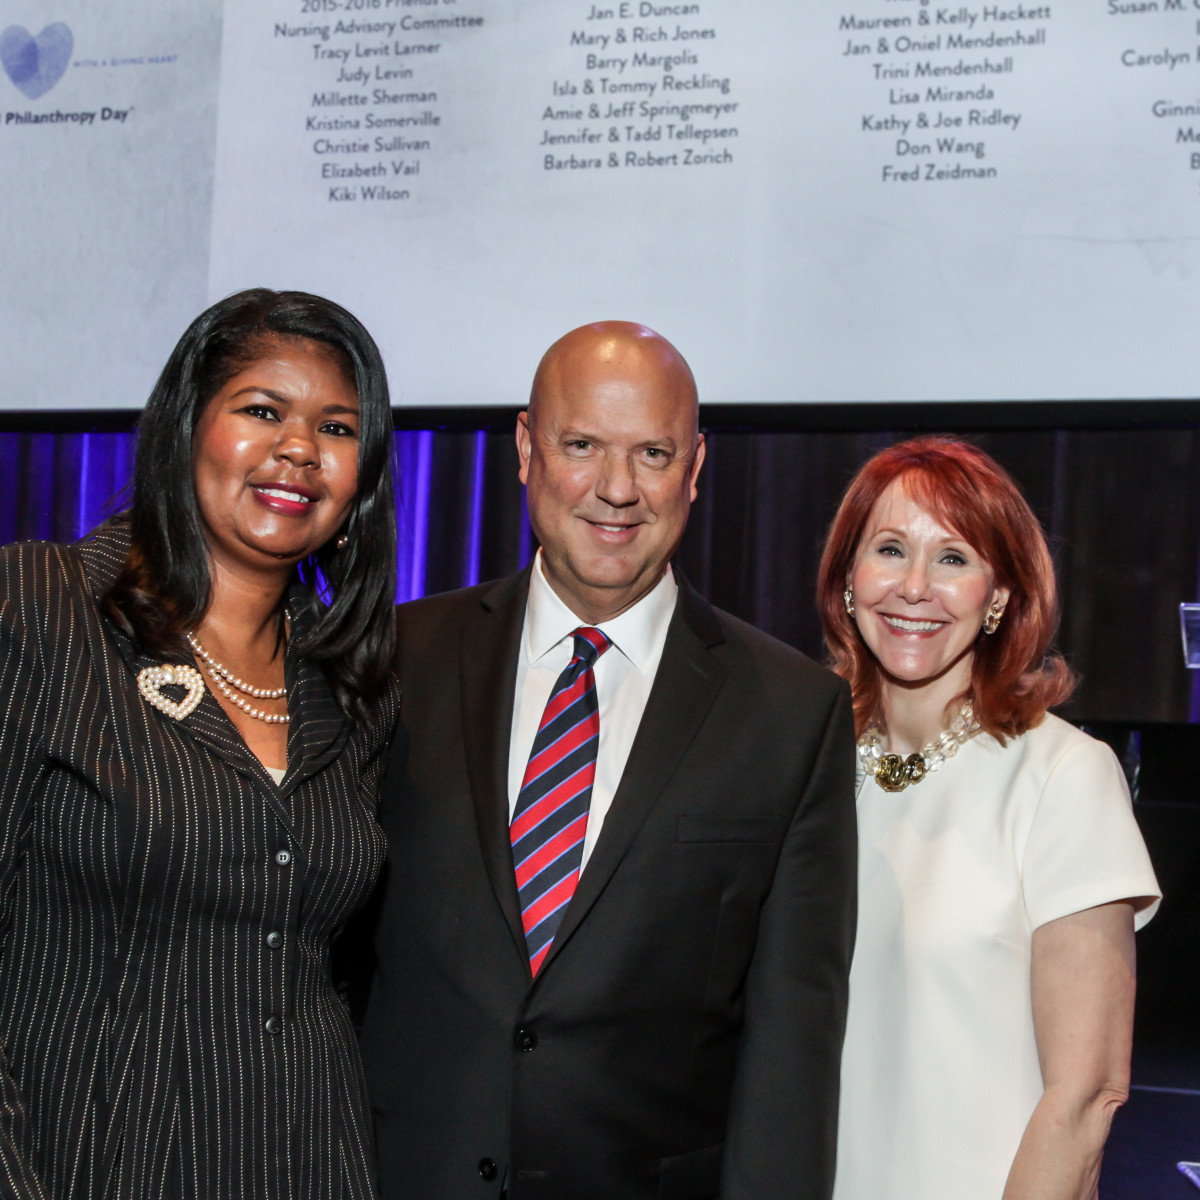 News, National Philanthropy Day Awards, Dec. 2015, April Daniel, Bob Charlet, Judy Howell